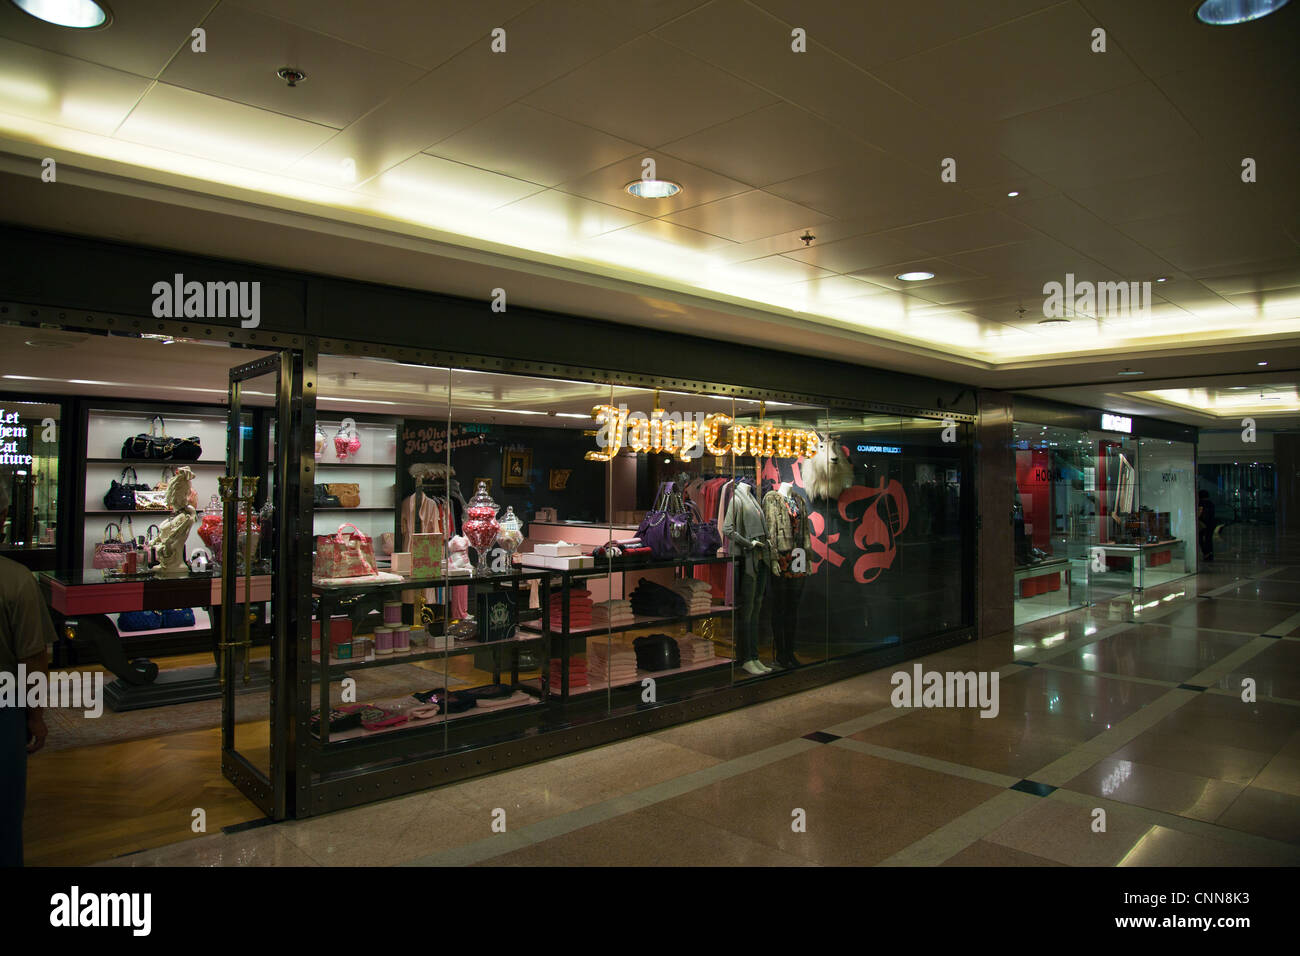 Harbor Harbour city ocean terminal, Kowloon, Hong Kong, China shopping centre center. inside shop juicy couture - Stock Image